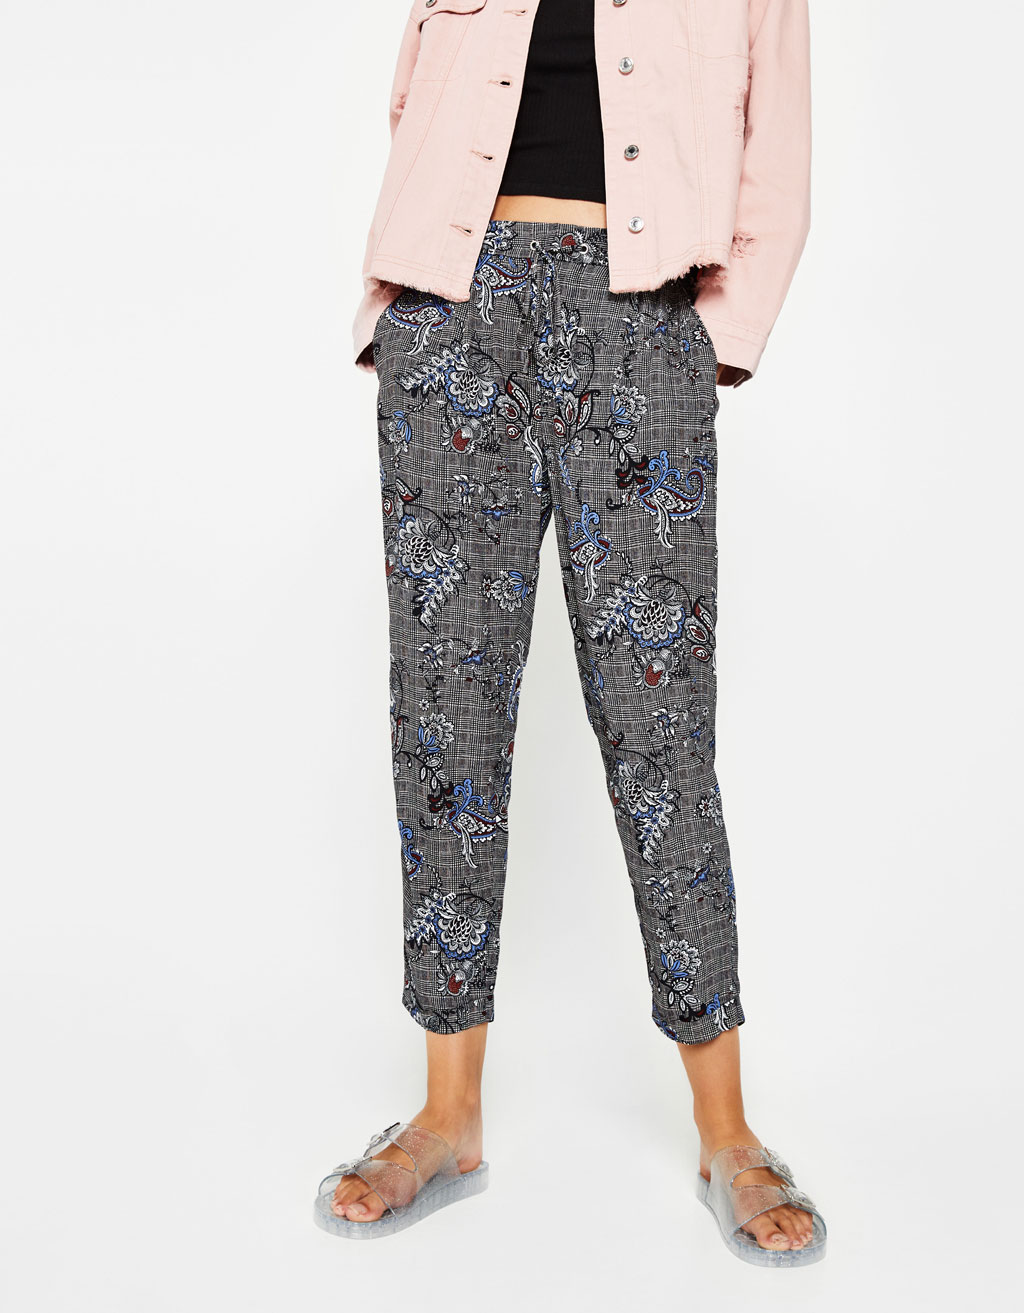 Pantaloni Jogger a quadri stampa all over